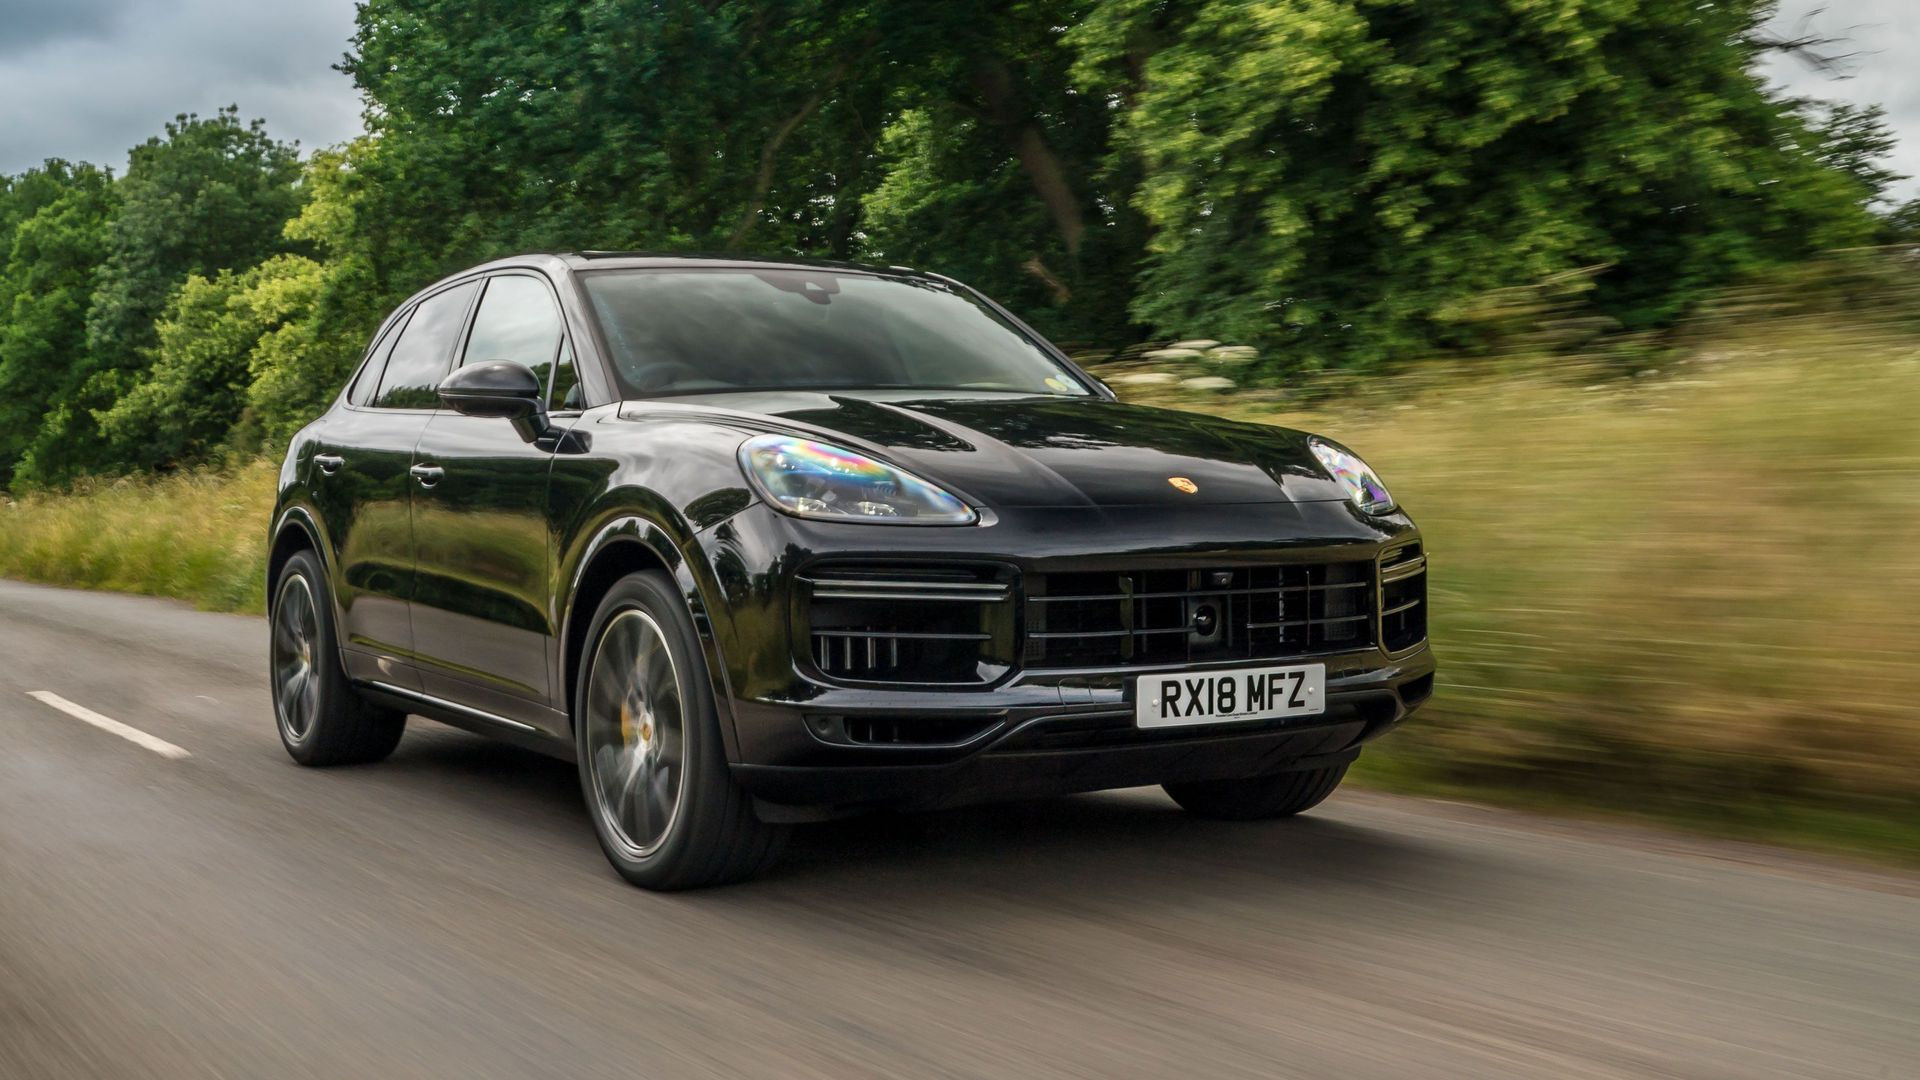 Porsche Cayenne Turbo S Used Cars For Sale Autotrader Uk